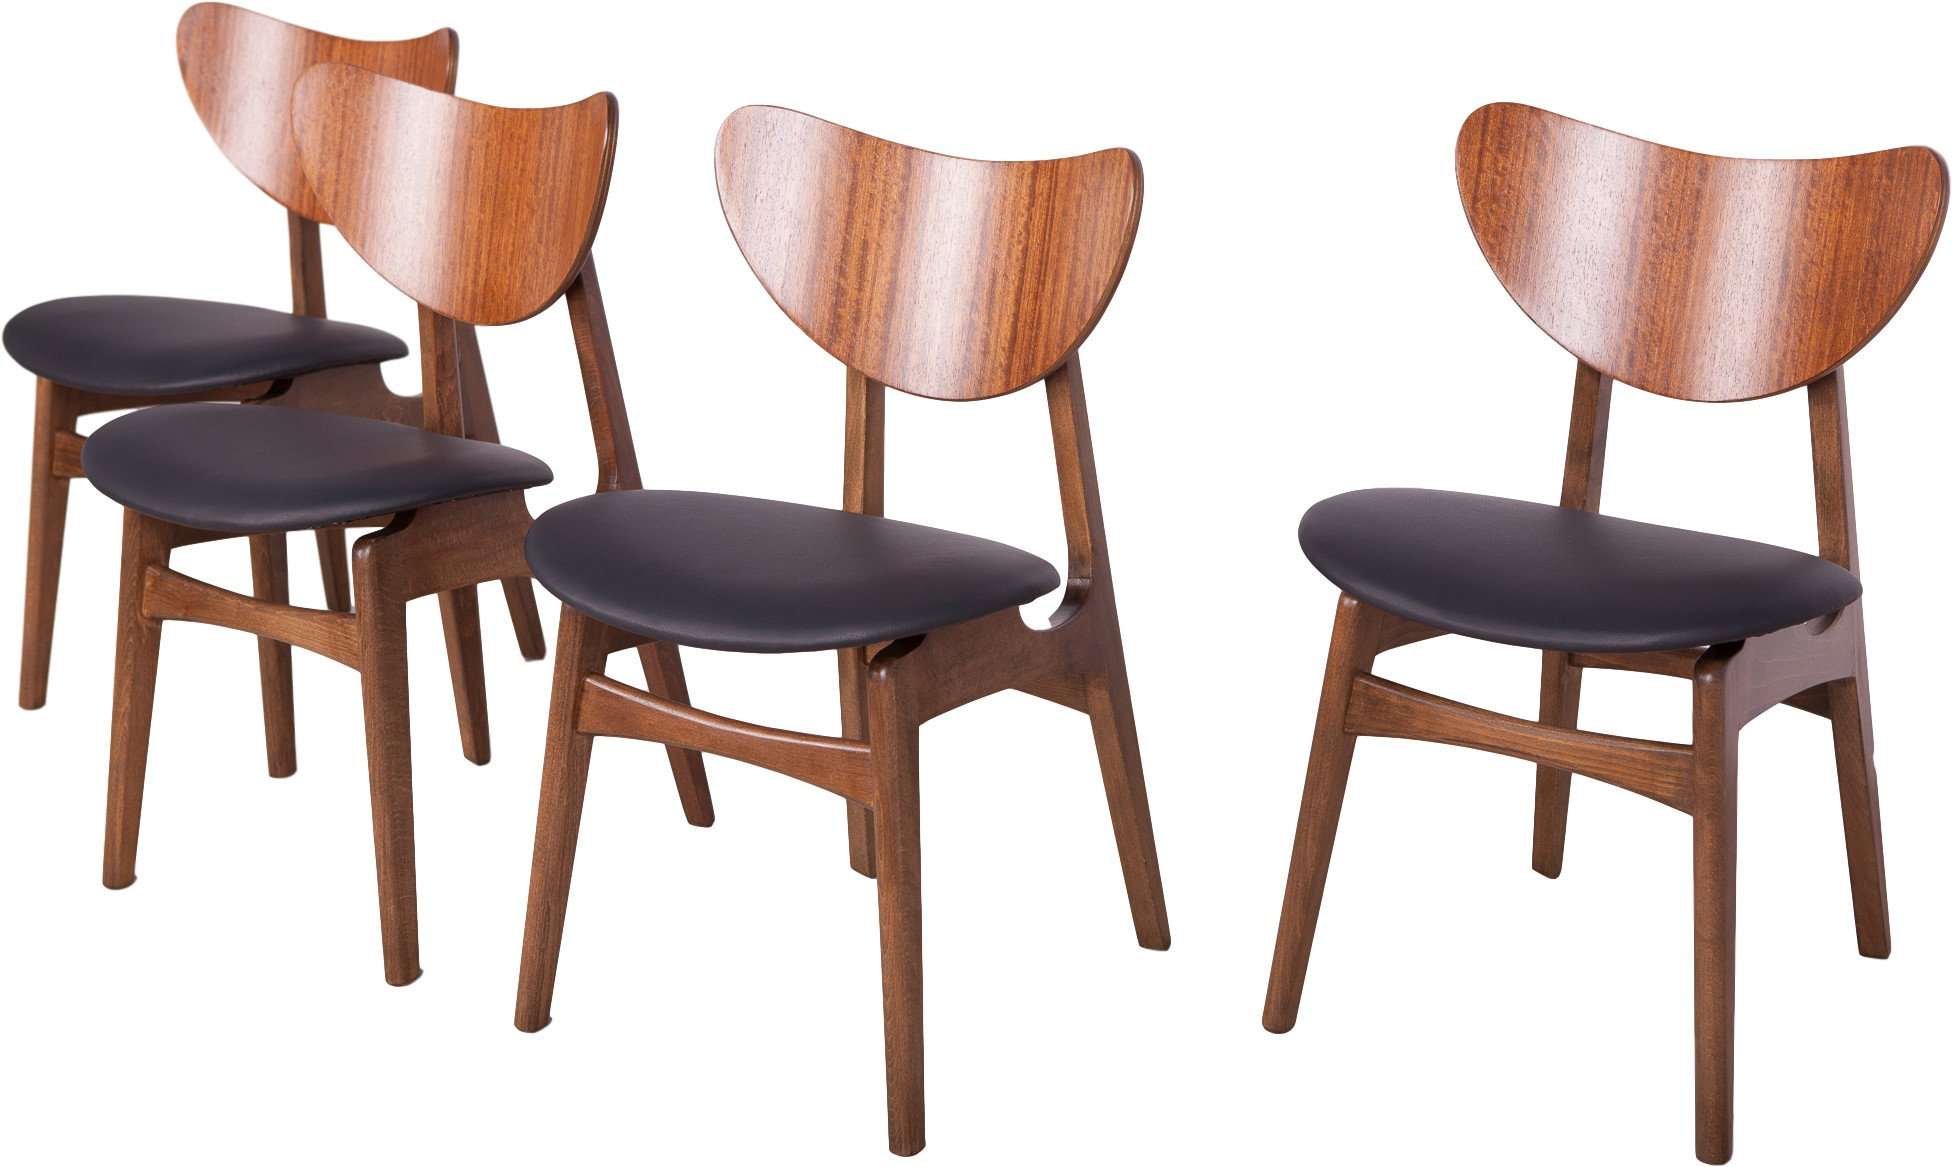 Set of Chairs, G-Plan, United Kingdom, 1960s